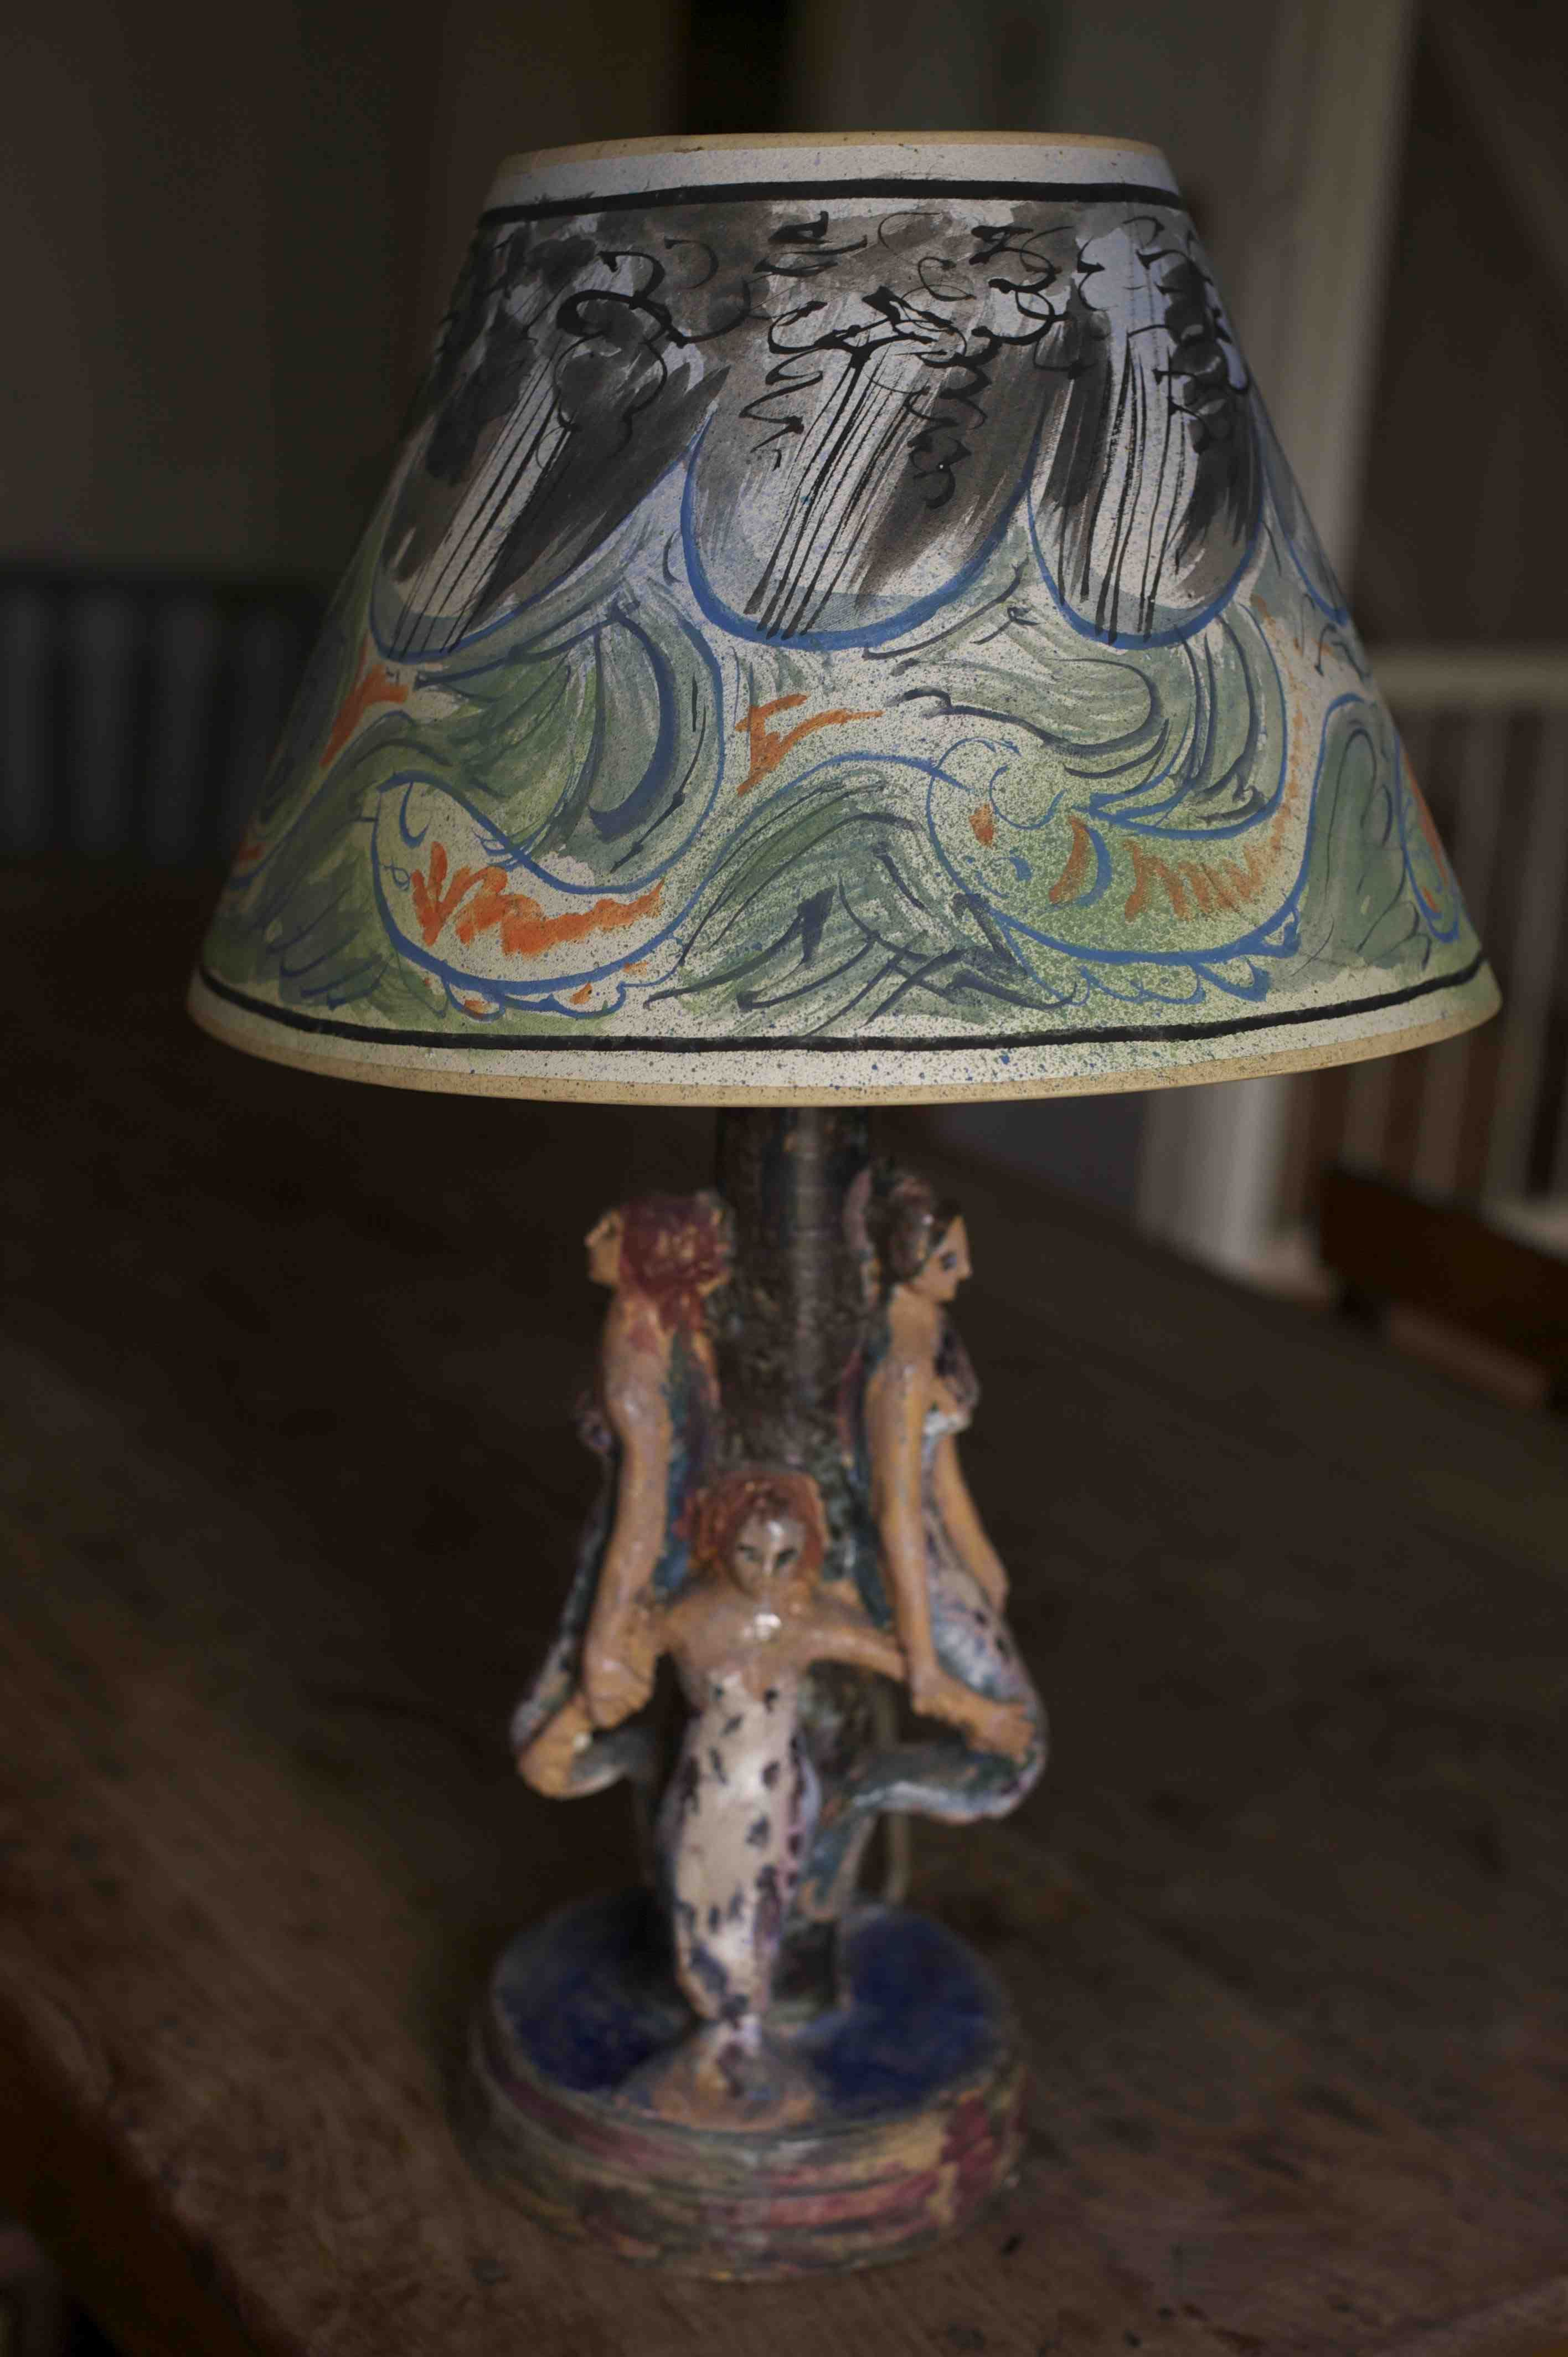 For Sale A New Departure For Us Here At The Painted House Co Uk We Are Starting To Sell Painting Lamp Shades Bloomsbury Group Country Living Christmas Fair